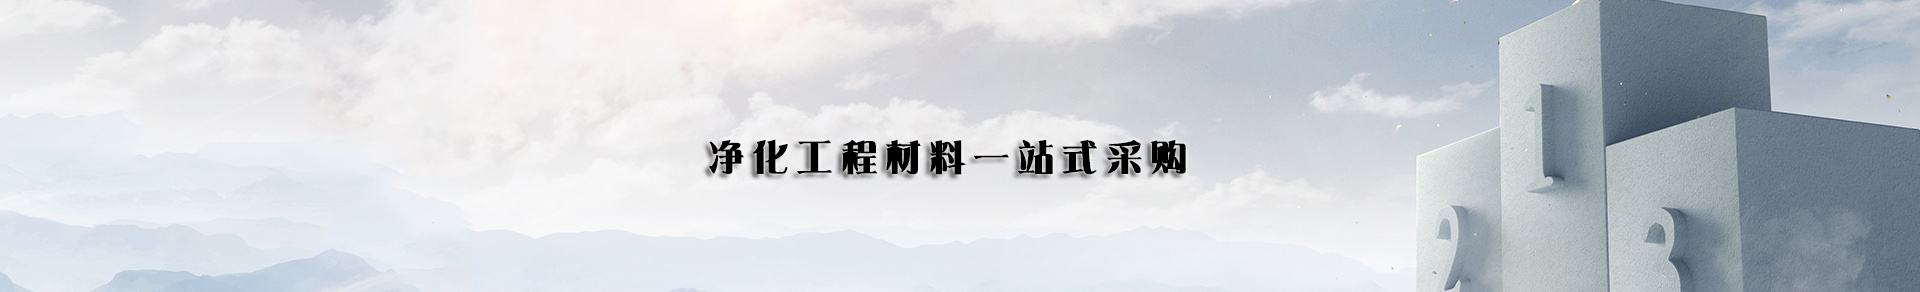 http://www.lujingjinghuaban.cn/data/upload/201910/20191031152215_250.jpg